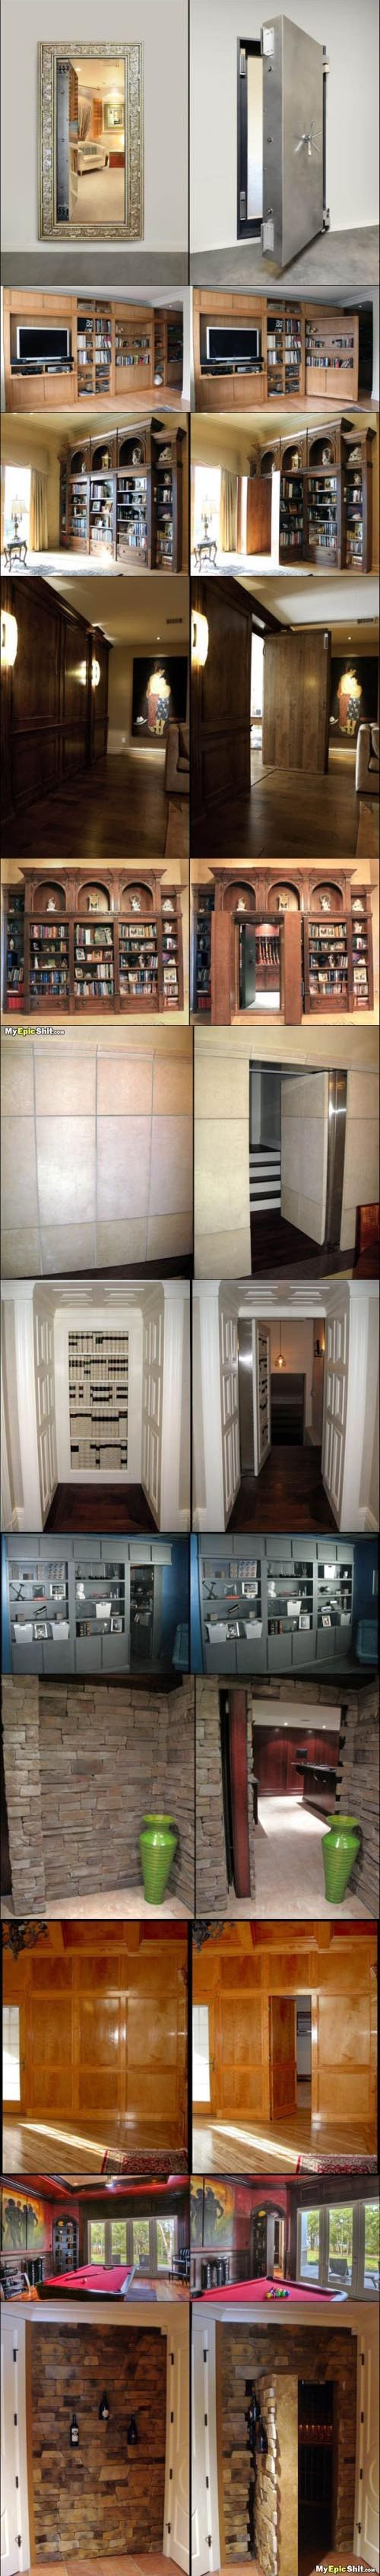 Man Cave Secret Room : Who doesn t want a secret room housey wonderfulness